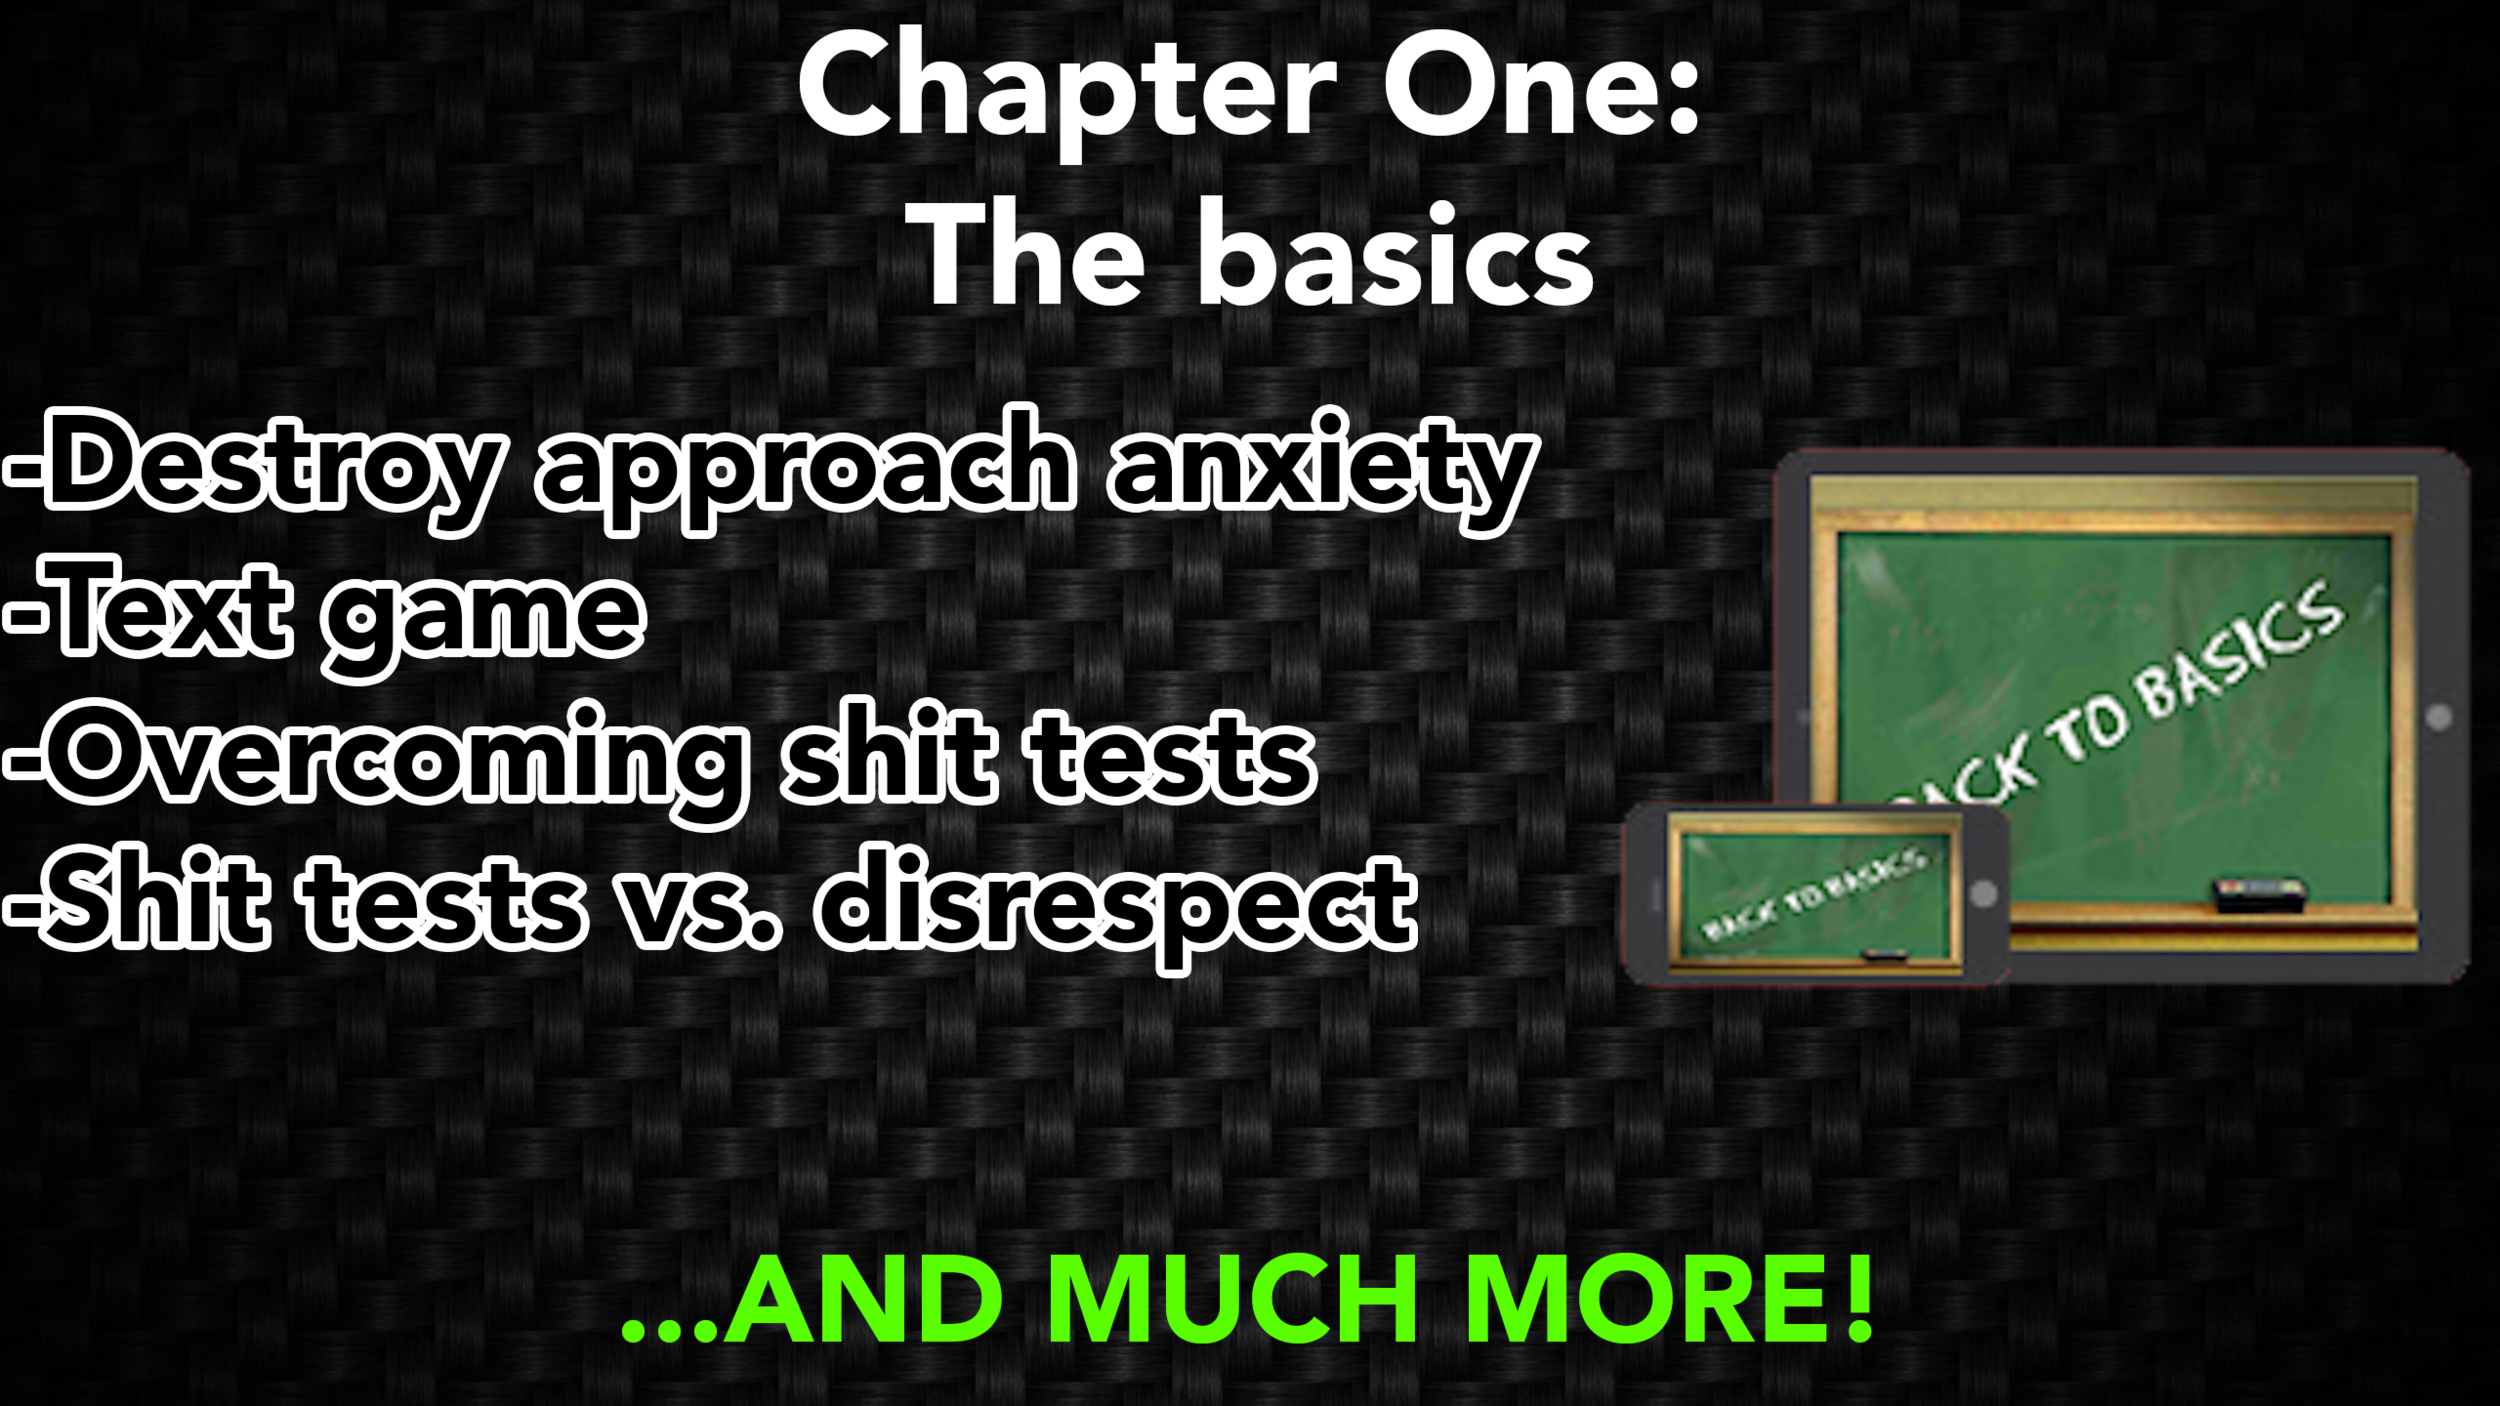 CHAPTER ONE copy.png